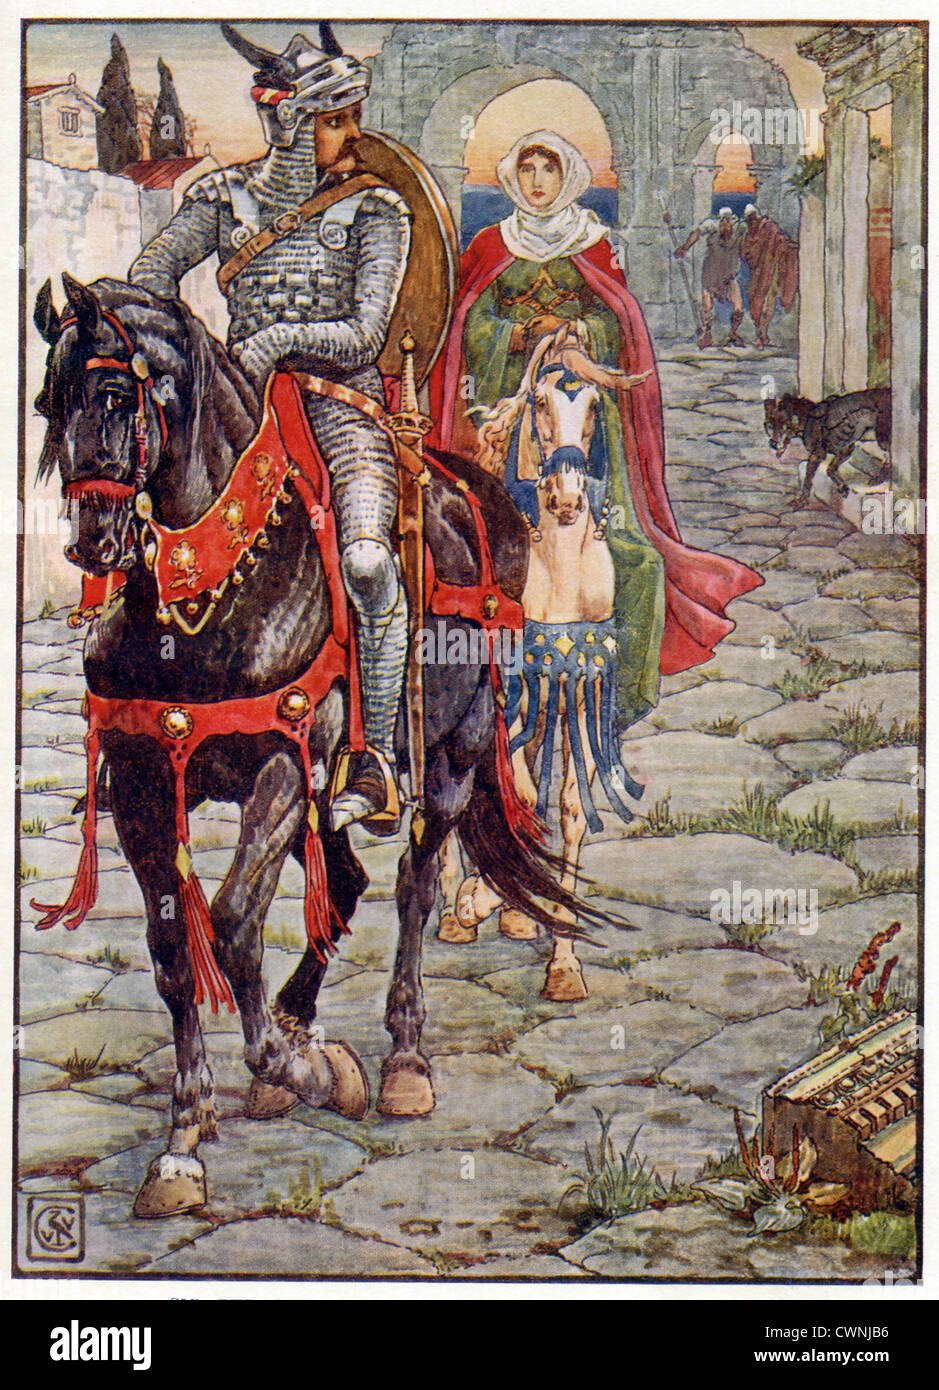 Sir Geraint tests Lady Enid's loyalty to him through many trials. Here they ride through a deserted Roman town. - Stock Image